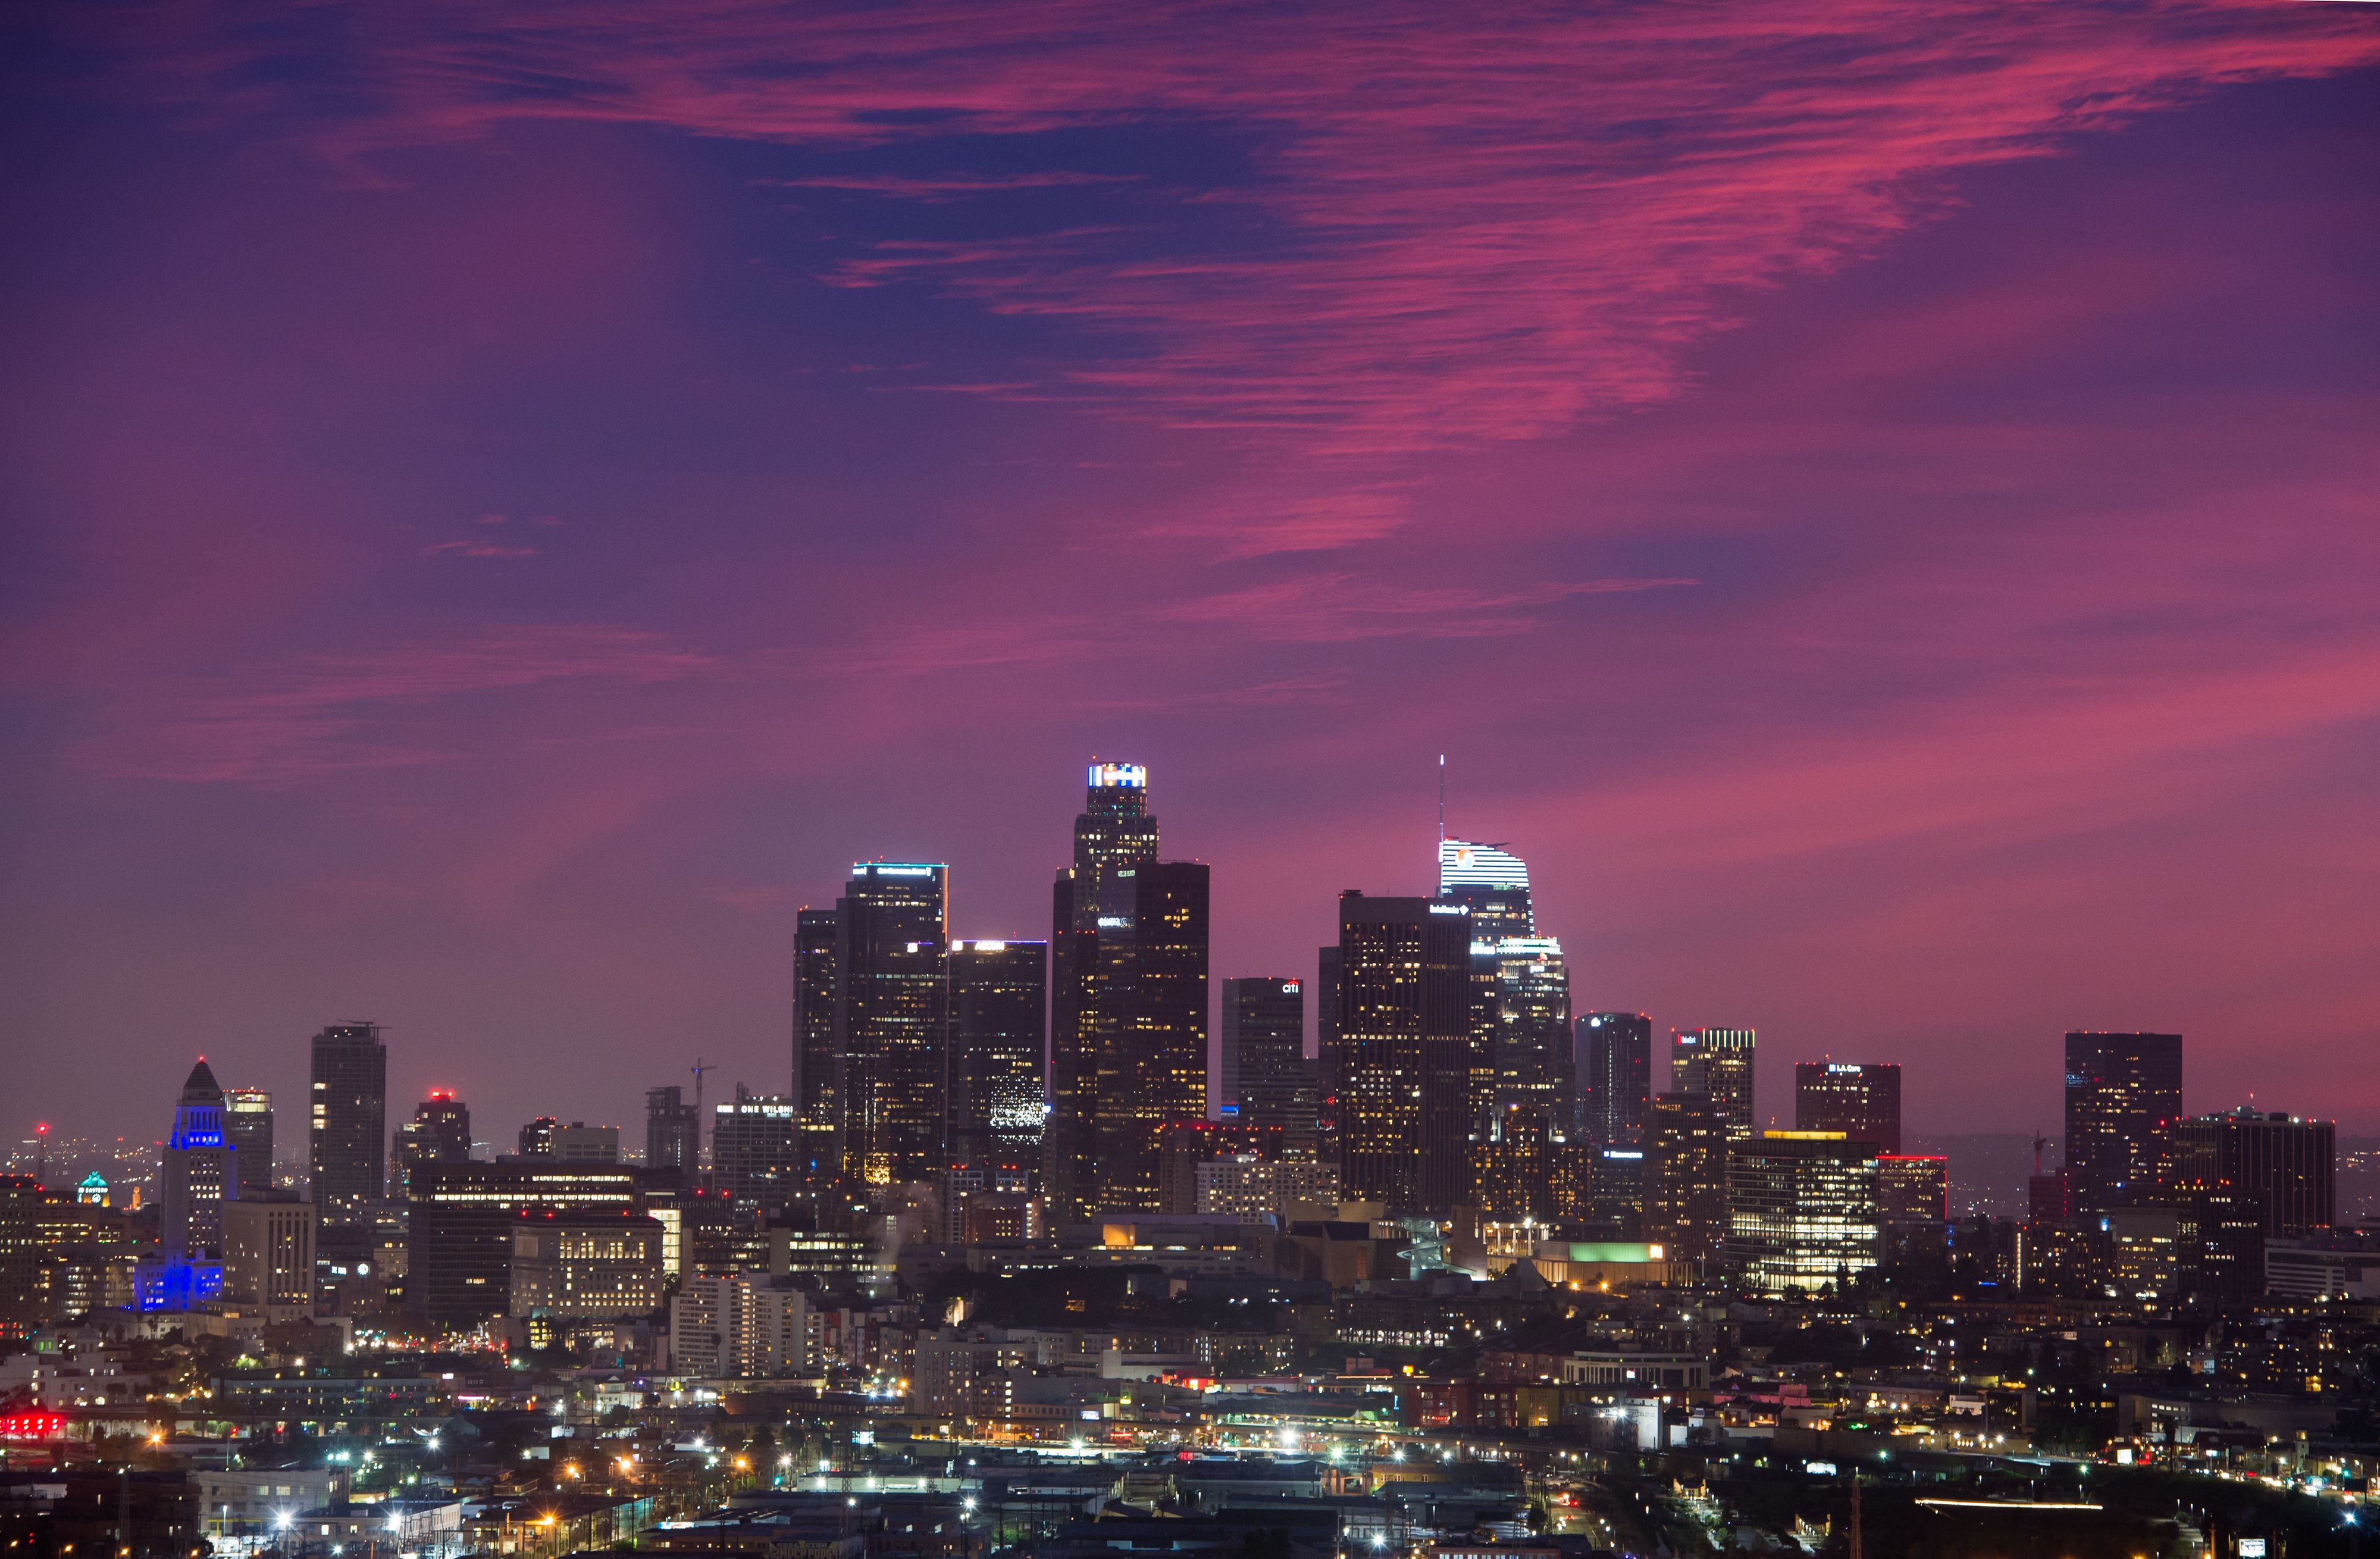 Best Places to Watch the Sunset in Los Angeles